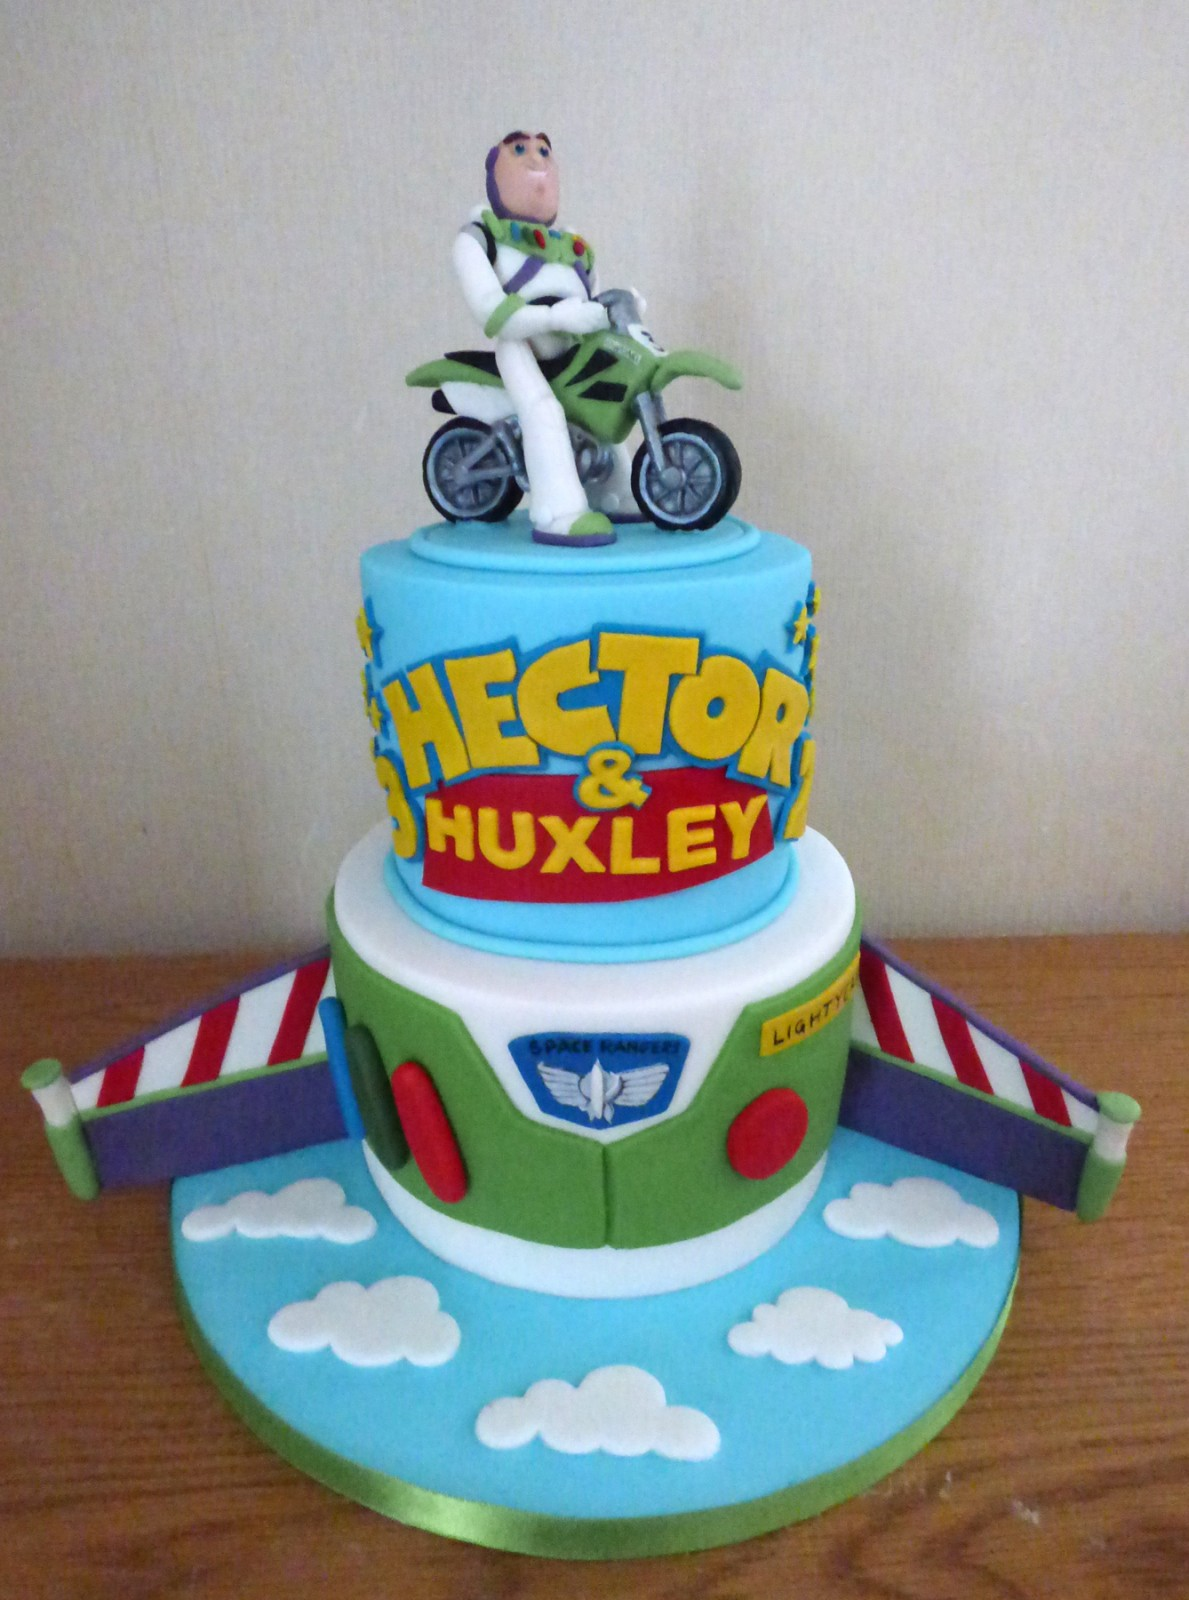 Admirable 2 Tier Buzz Lightyear Themed Birthday Cake Susies Cakes Personalised Birthday Cards Fashionlily Jamesorg